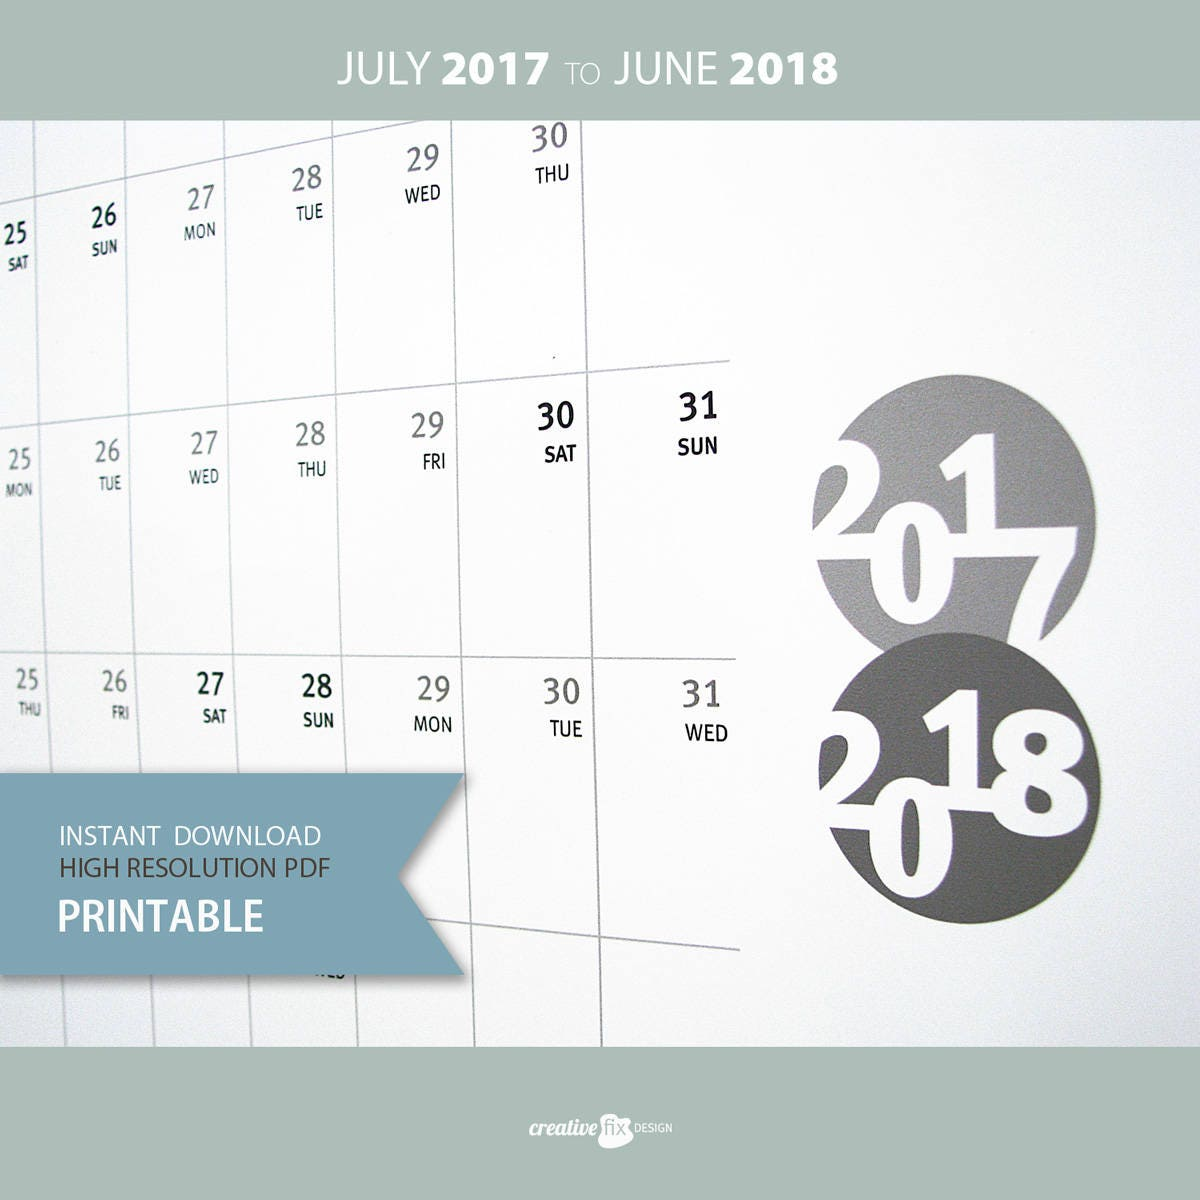 Mid Year Calendar : Calendar mid year planner business new